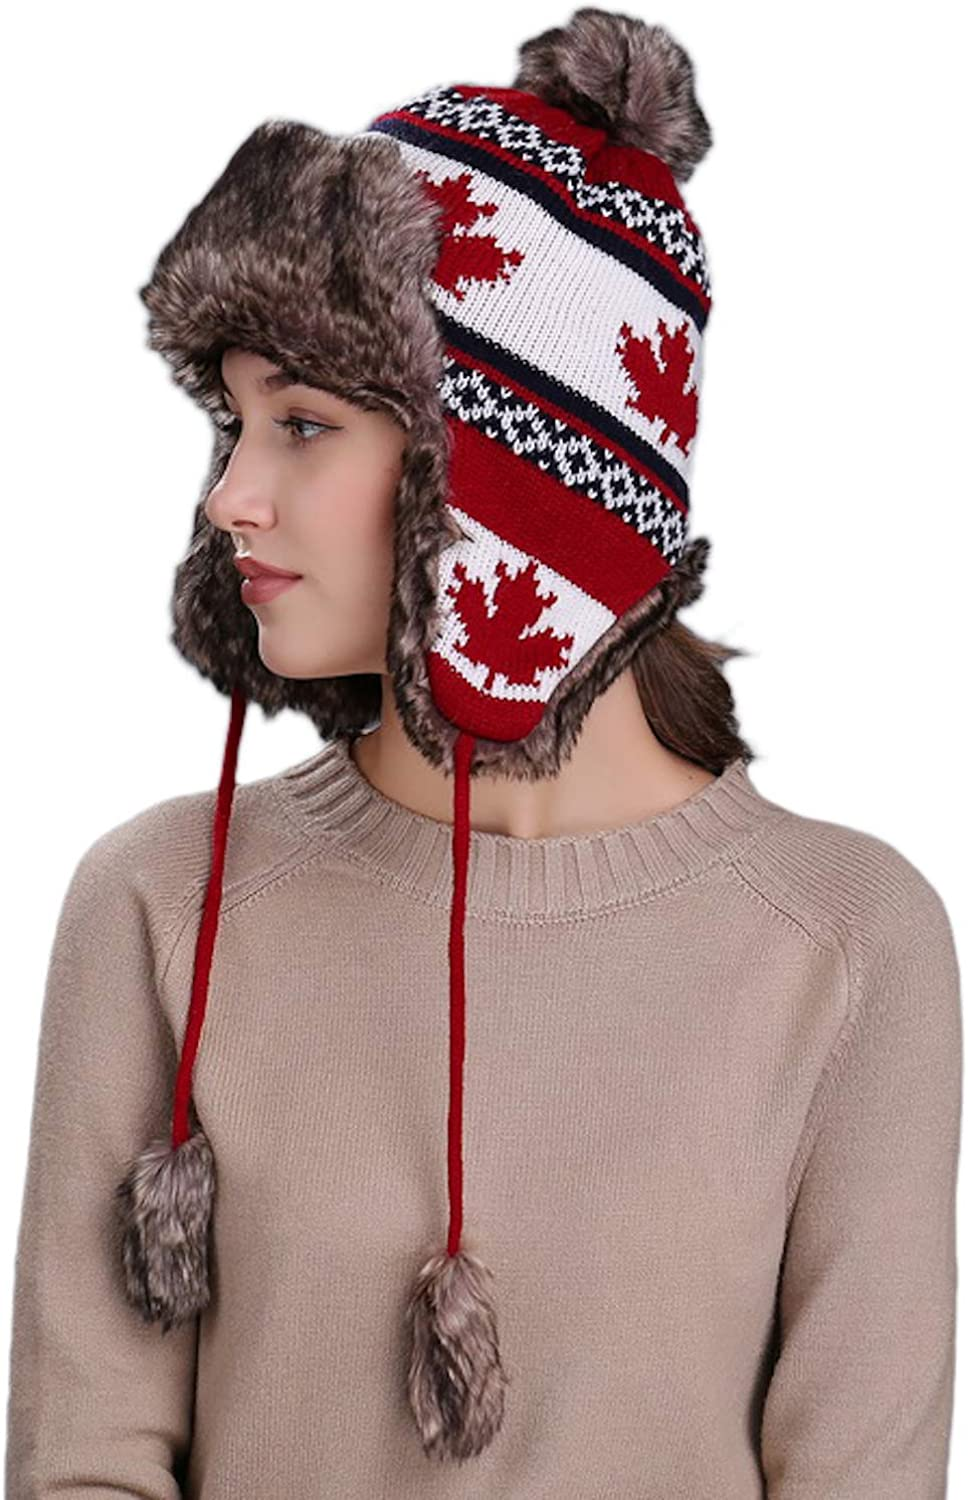 60cm ADULT PERUVIAN TRAPPER WINTER KNITTED FAUX FUR HAT 3 COLOURS SIZES 58cm